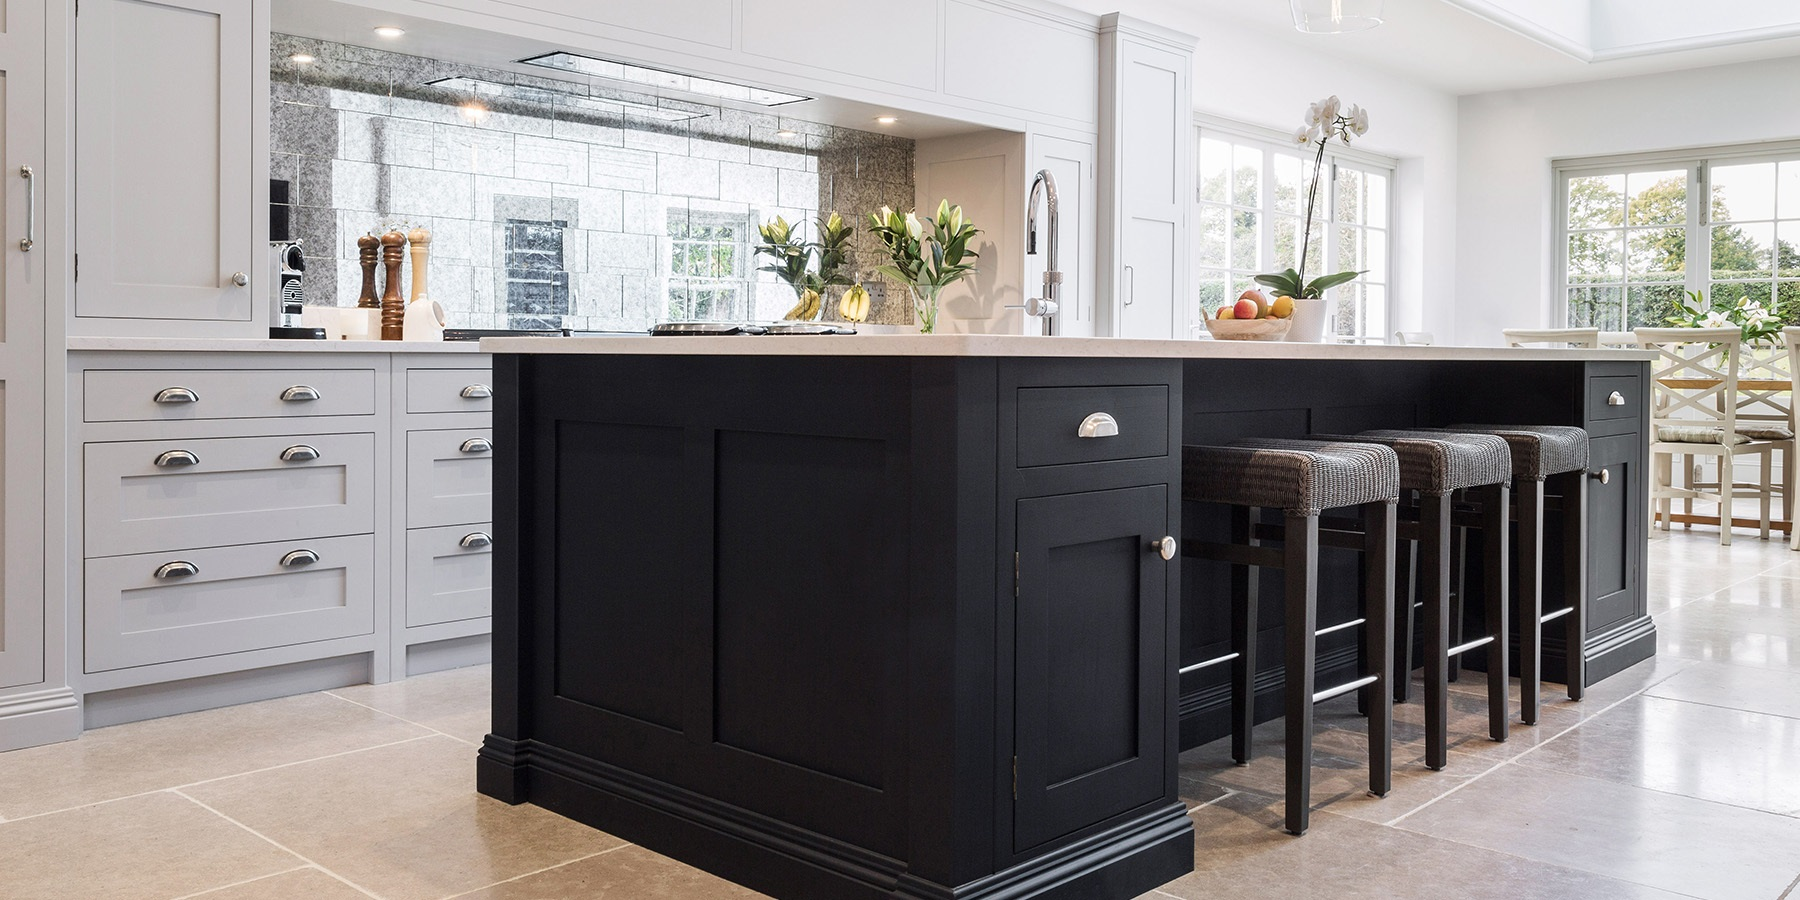 Luxury Open Plan Shaker Kitchen - Burlanes handmade Wellsdown kitchen in navy and grey, with central island and AGA Total Control.